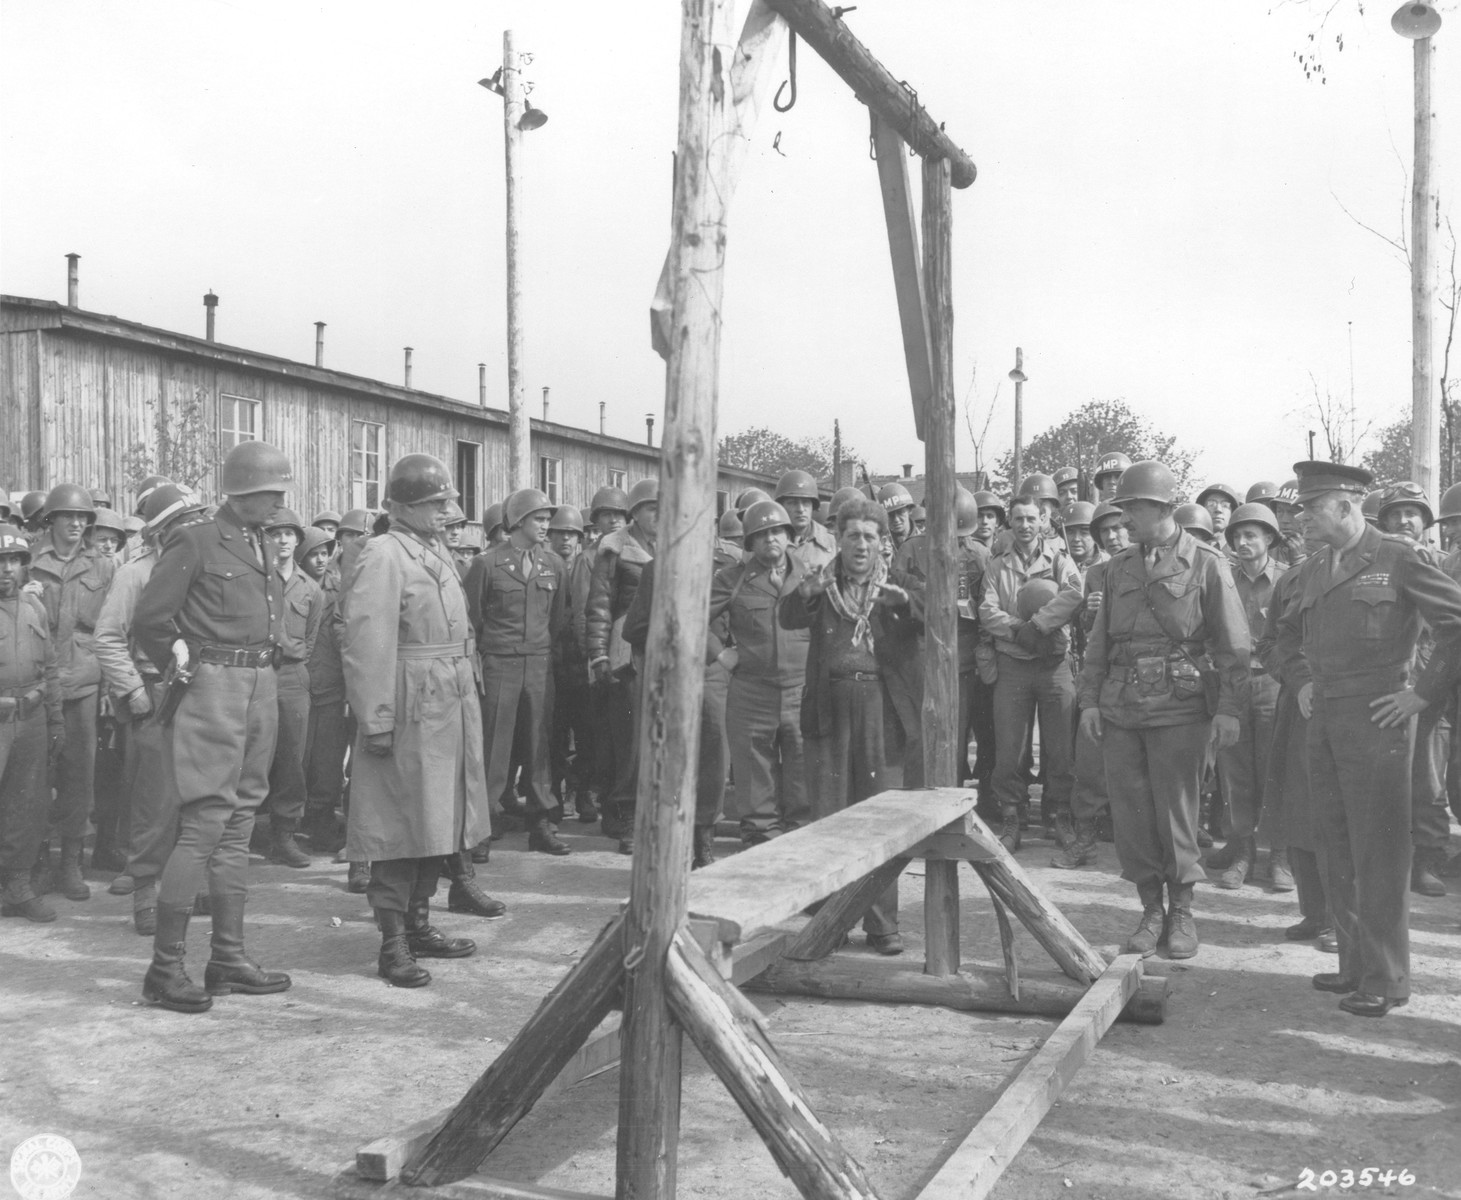 An Austrian-Jewish survivor, who had been deported from Holland, points out the gallows in Ohrdruf to General Dwight D. Eisenhower and a party of high ranking U.S. officers, including General Omar N. Bradley, Lt. Gen. George S. Patton, and Major General Troy H. Middleton, during an official tour of the newly liberated concentration camp.